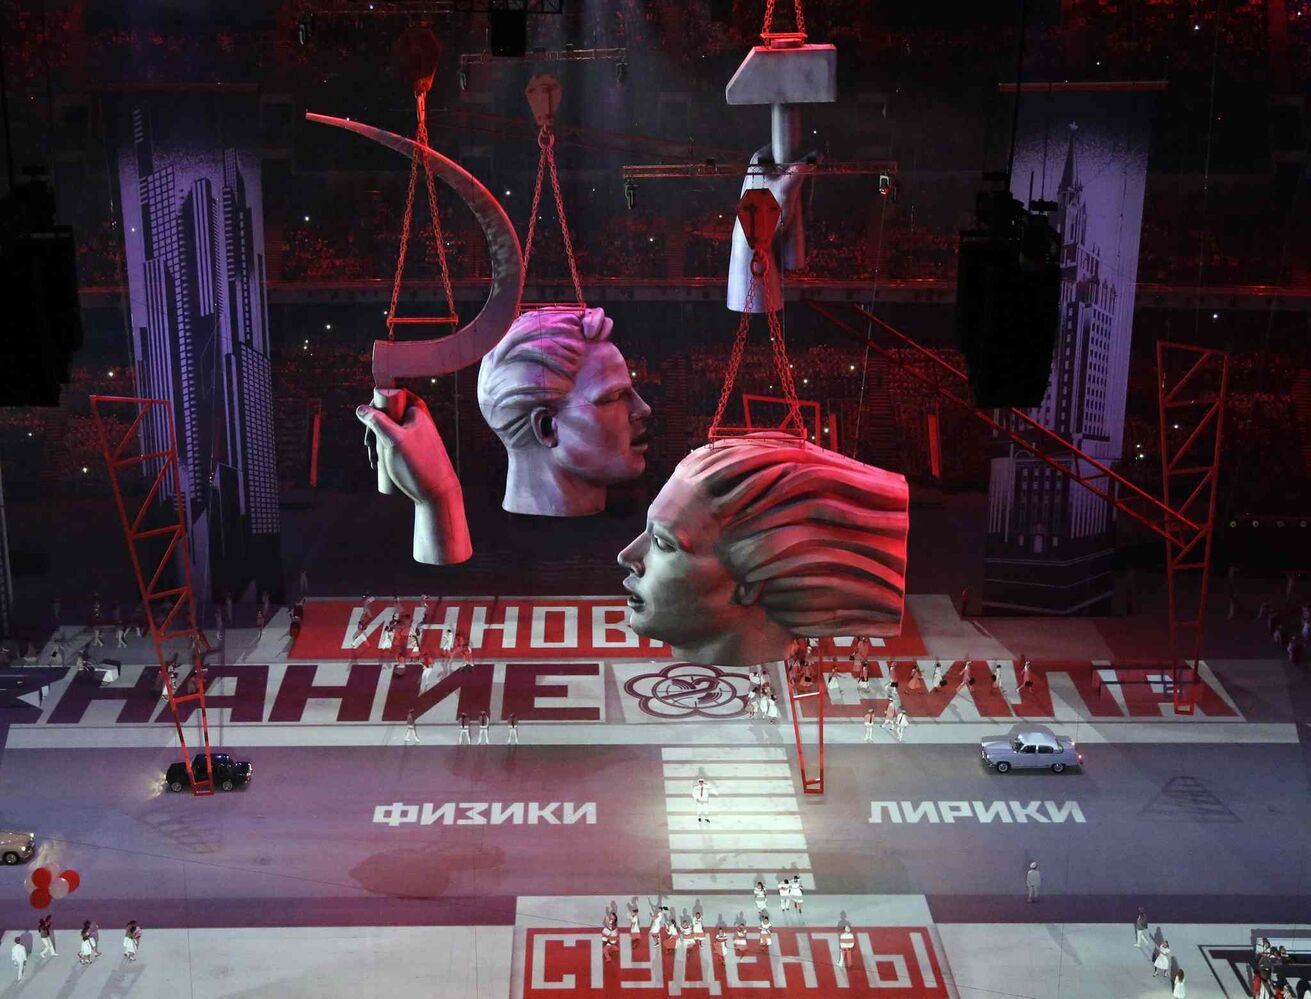 Actors perform during the opening ceremony of the 2014 Winter Olympics in Sochi, Russia, Friday, Feb. 7, 2014. (AP Photo/David J. Phillip )